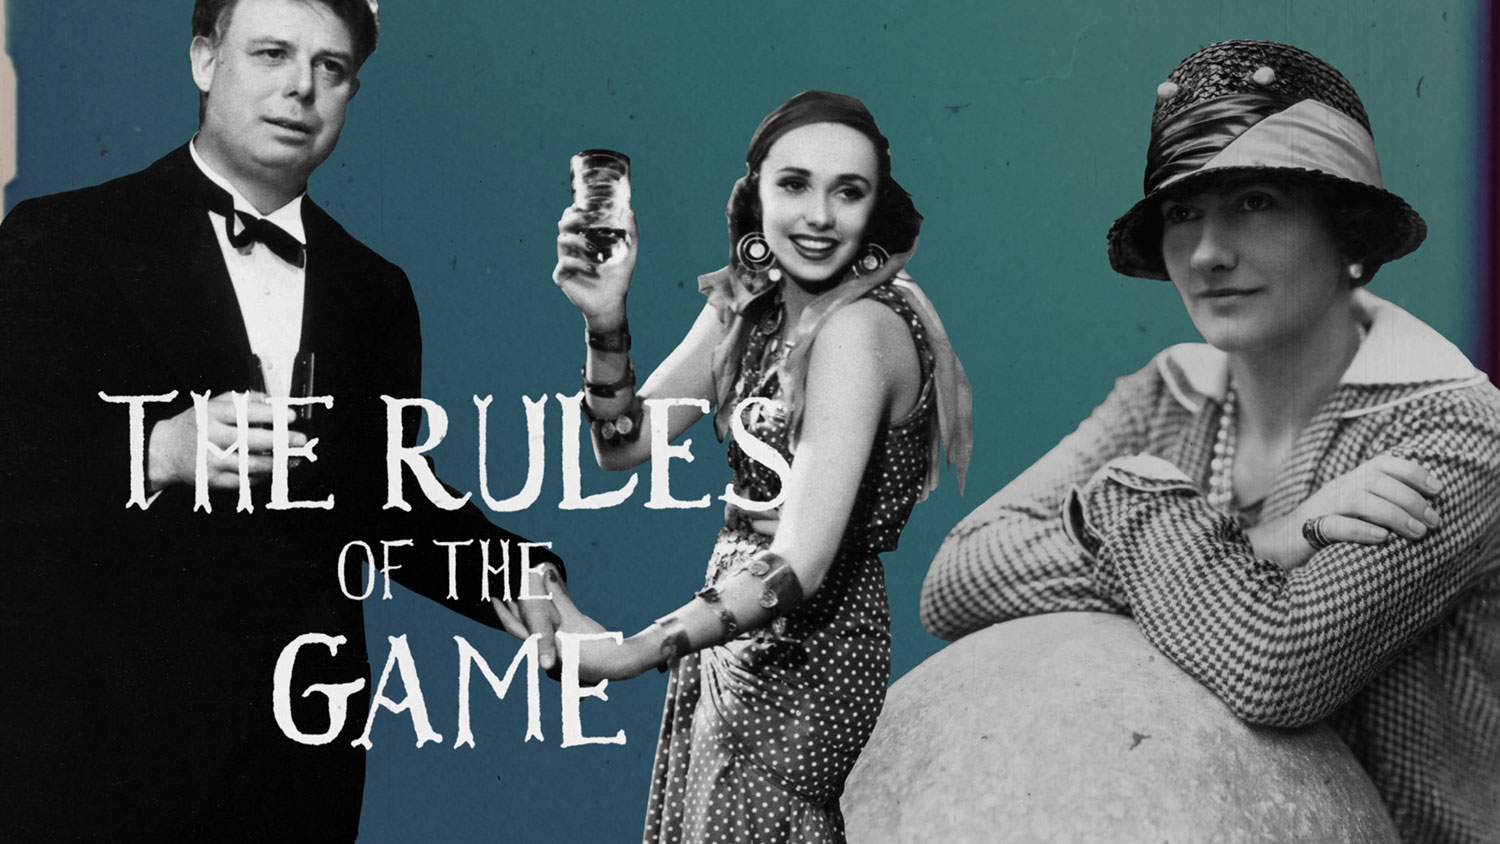 inside chanel - gabrielle chanel và phim The Rules of game